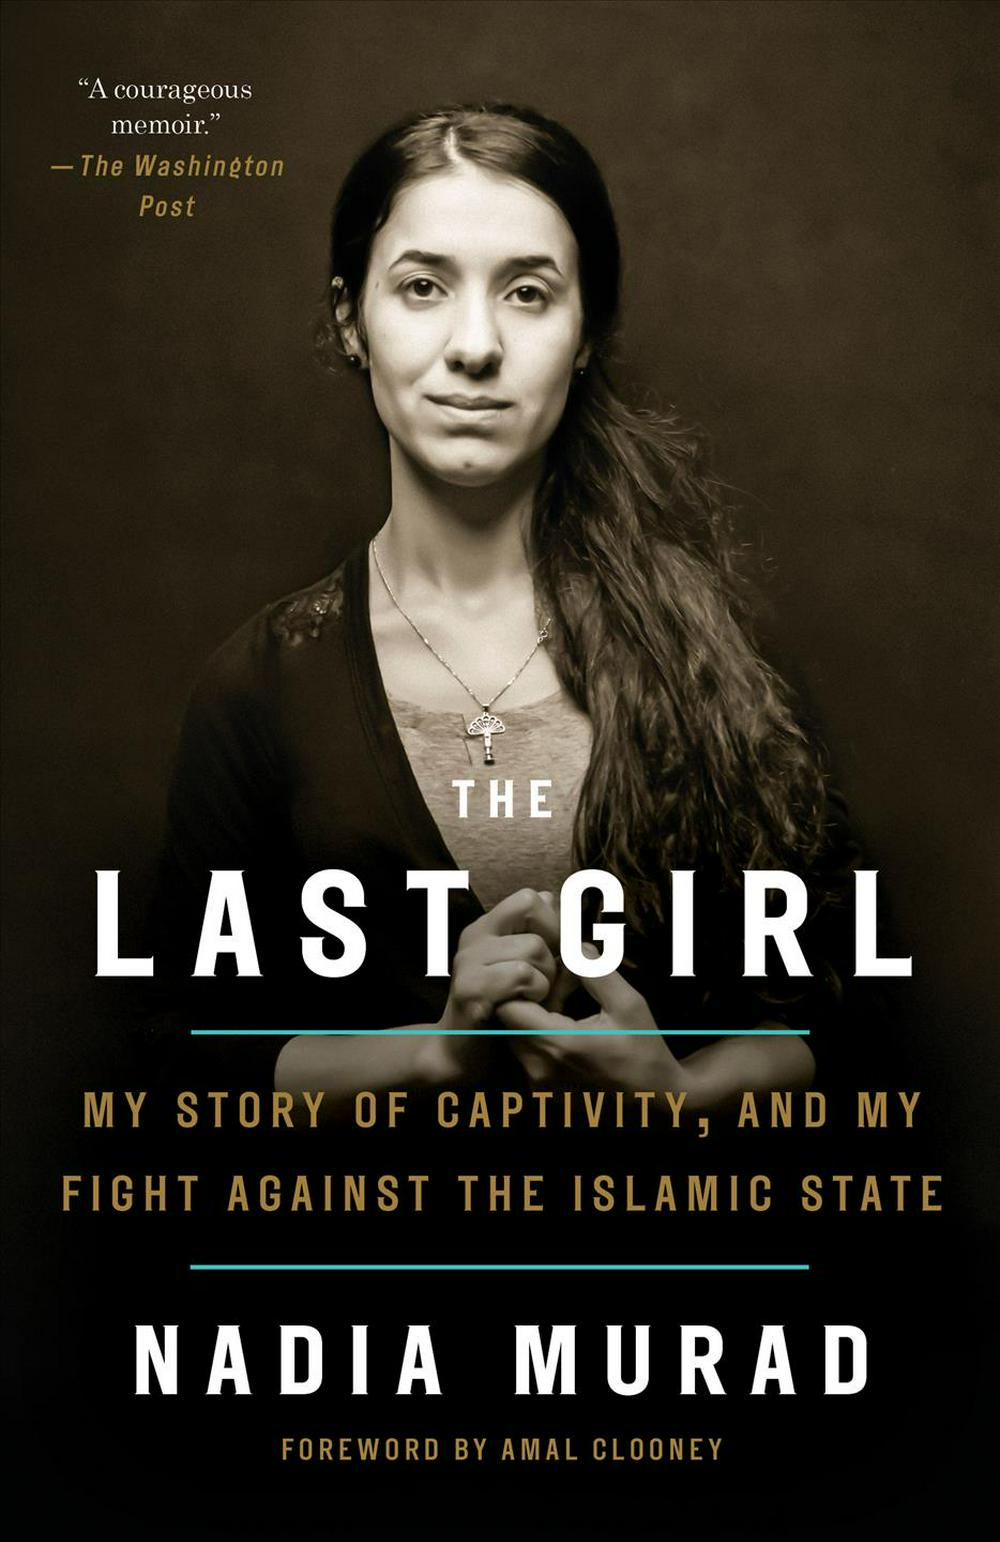 The Last Girl by Nadia Murad, ISBN: 9781524760441